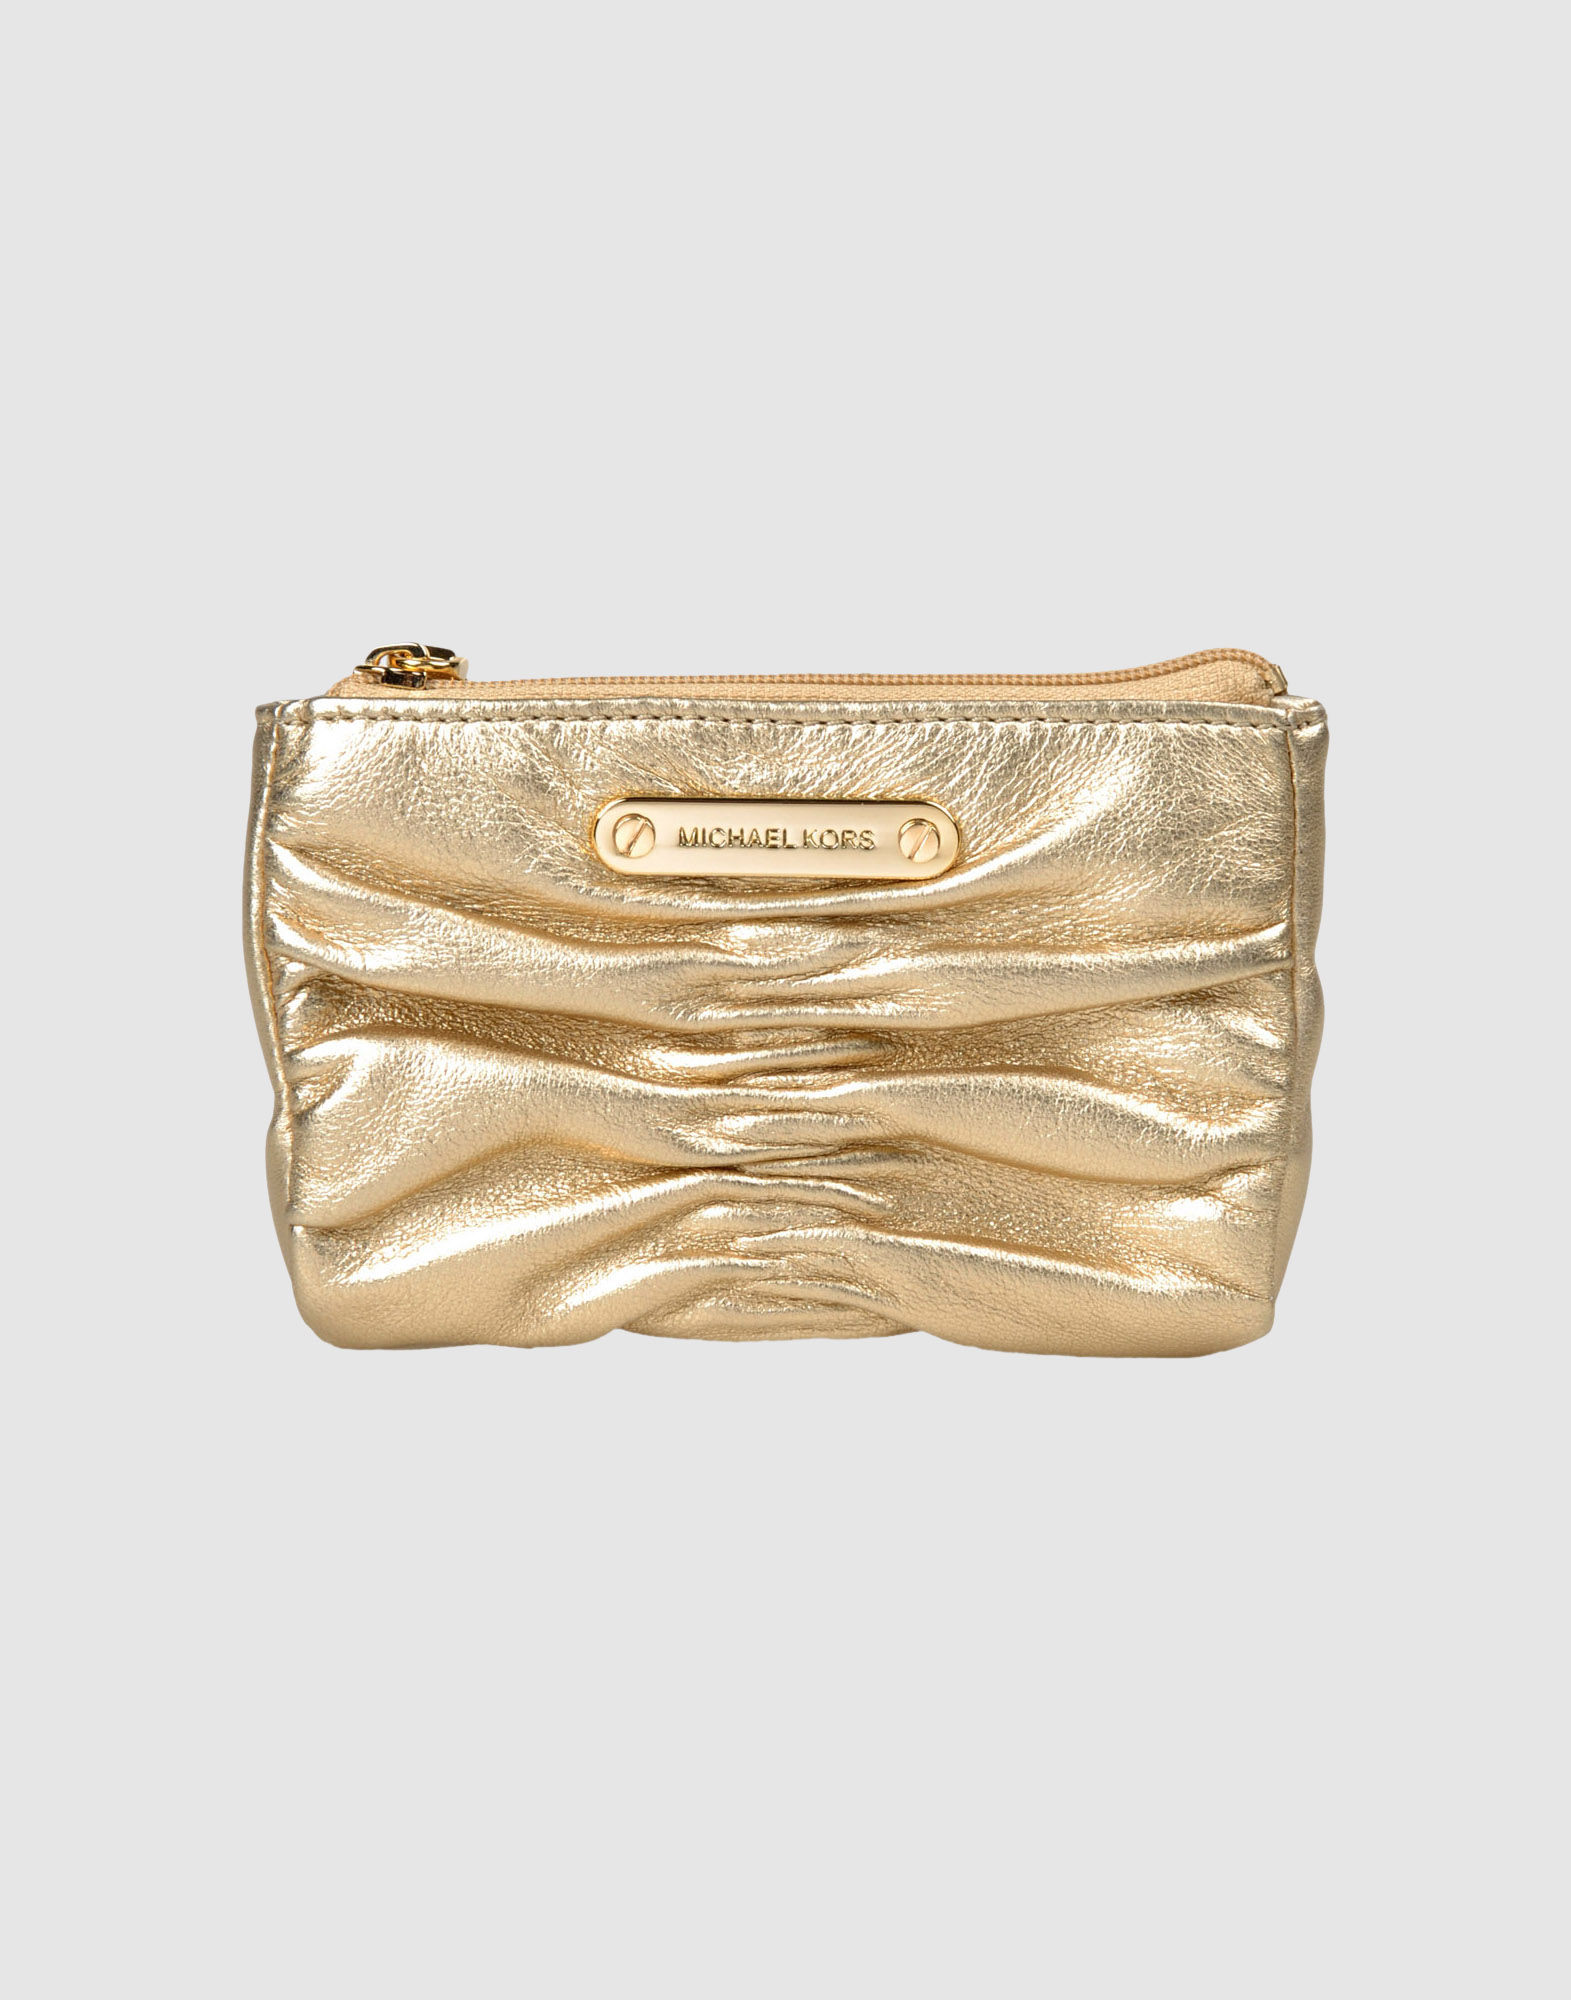 Michael Kors Coin Purses In Gold Lyst